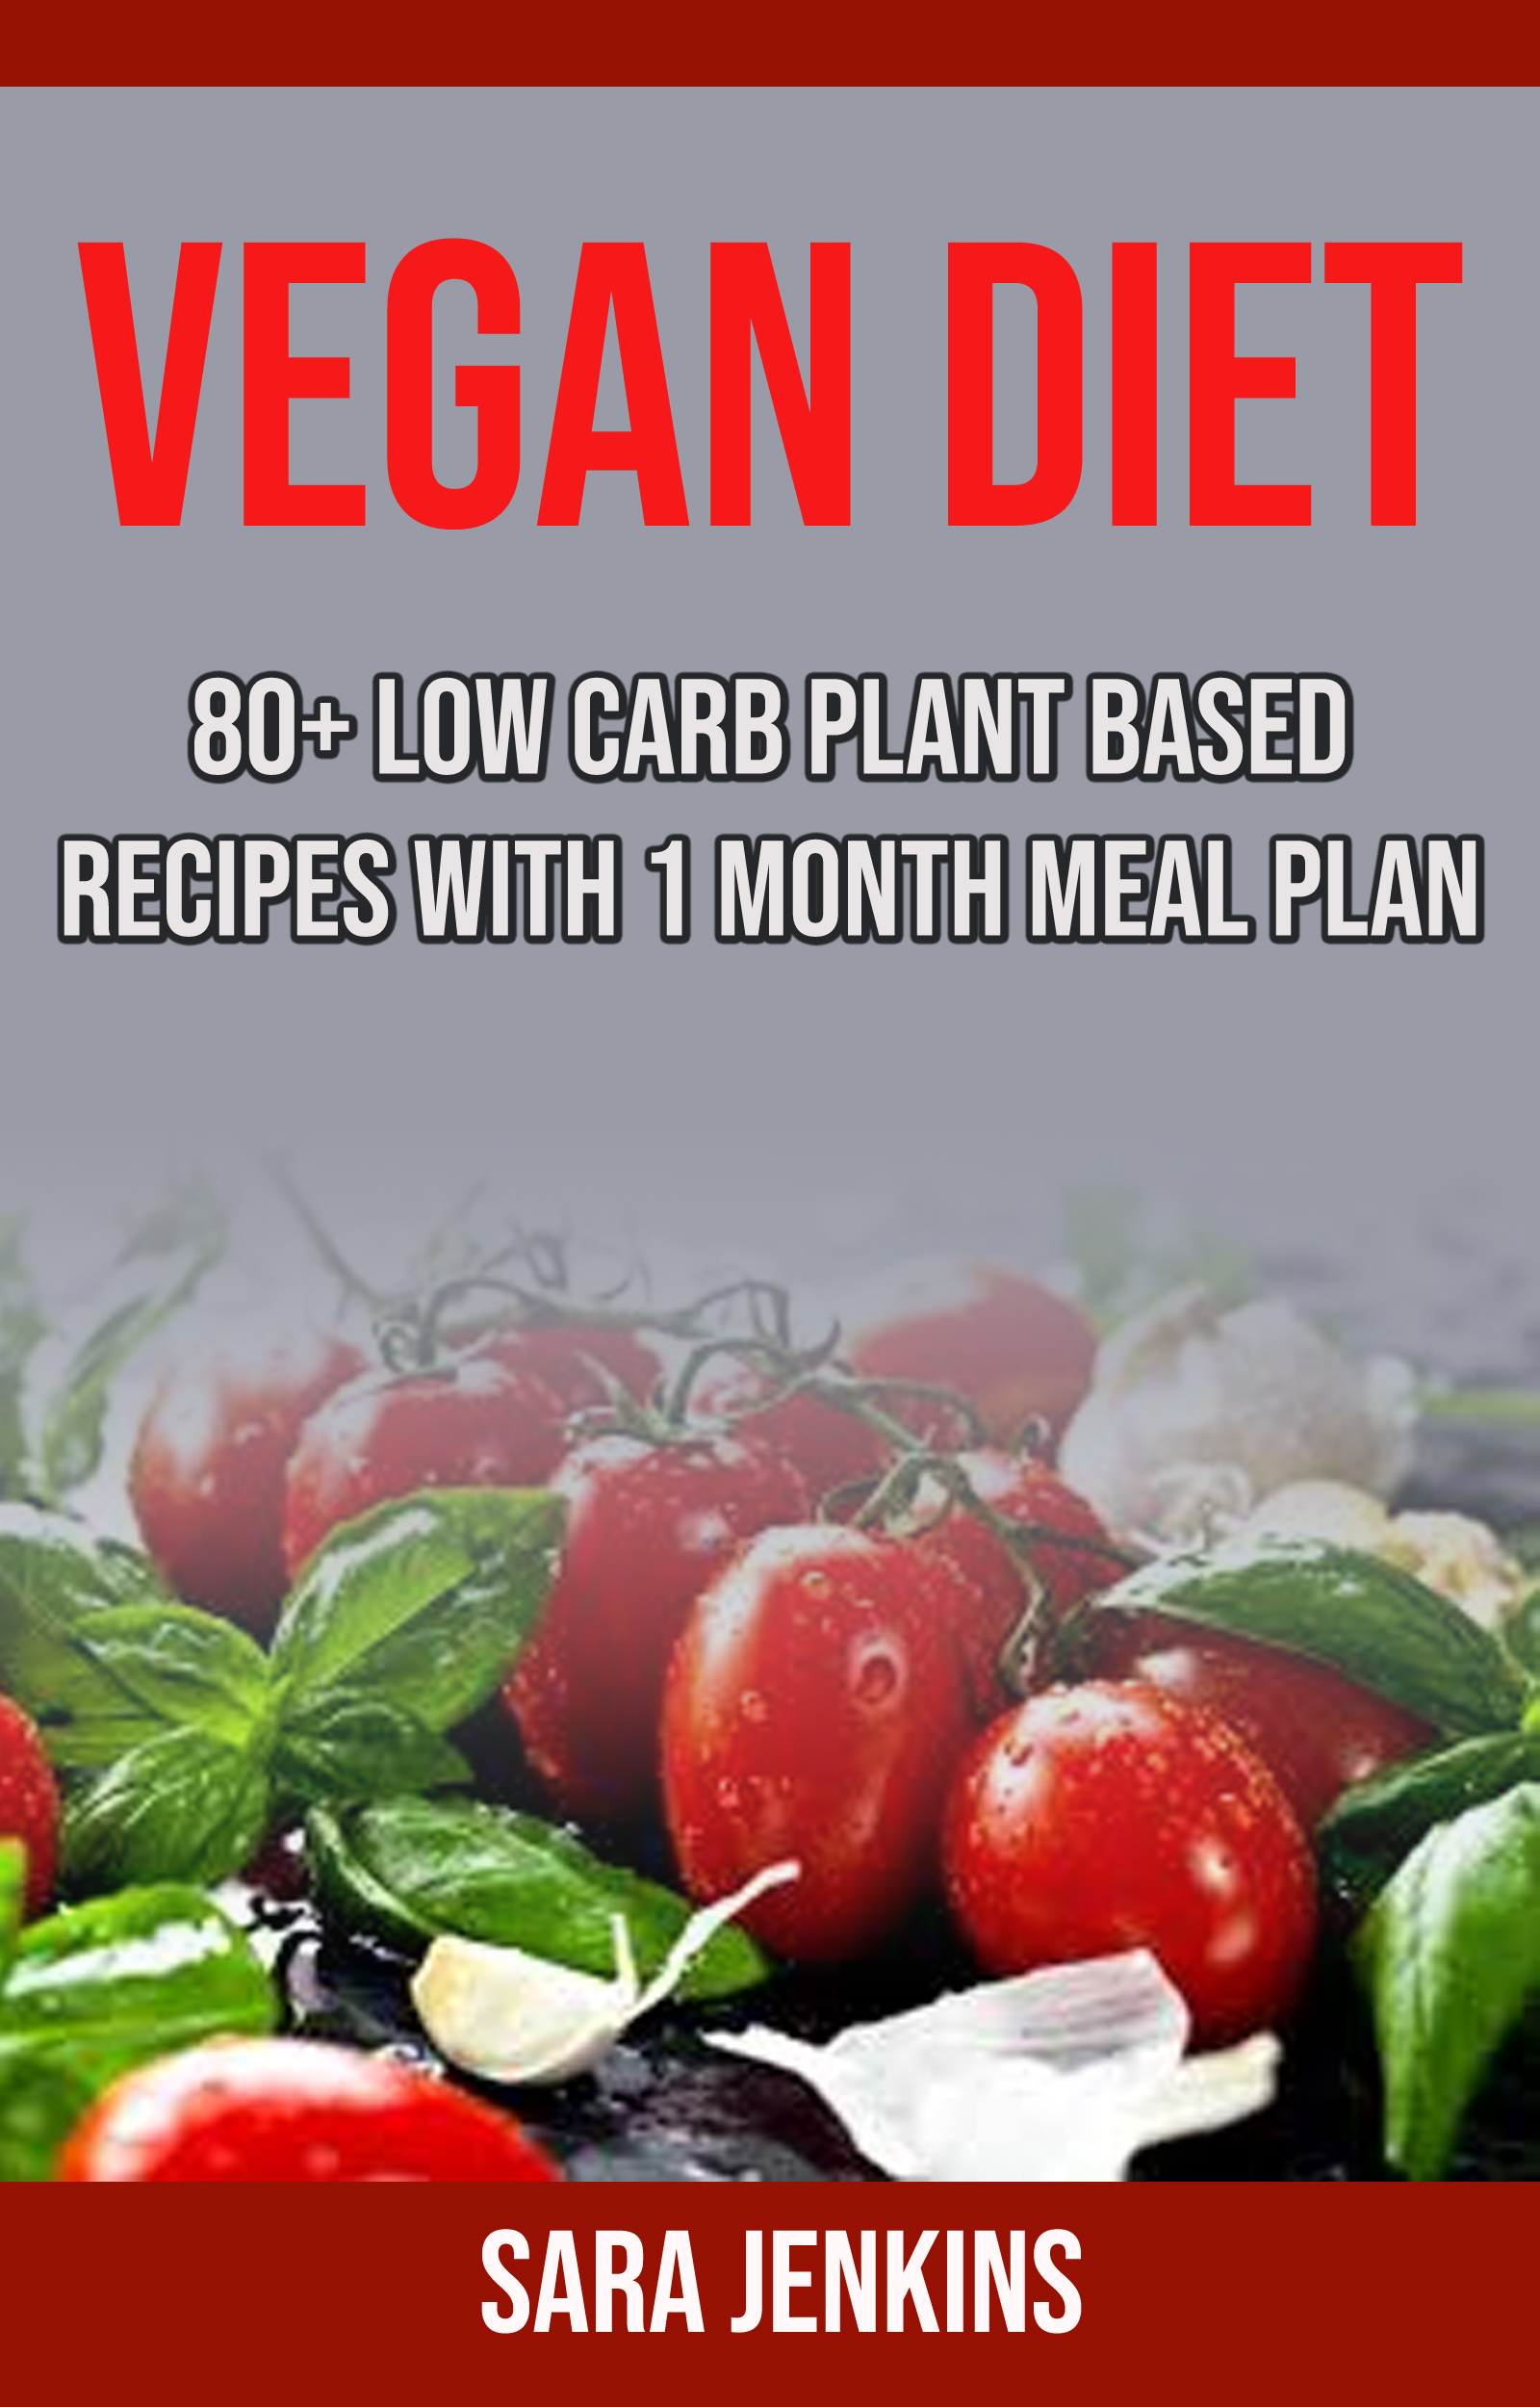 Vegan diet: 80+ low carb plant based recipes with 1 month meal plan